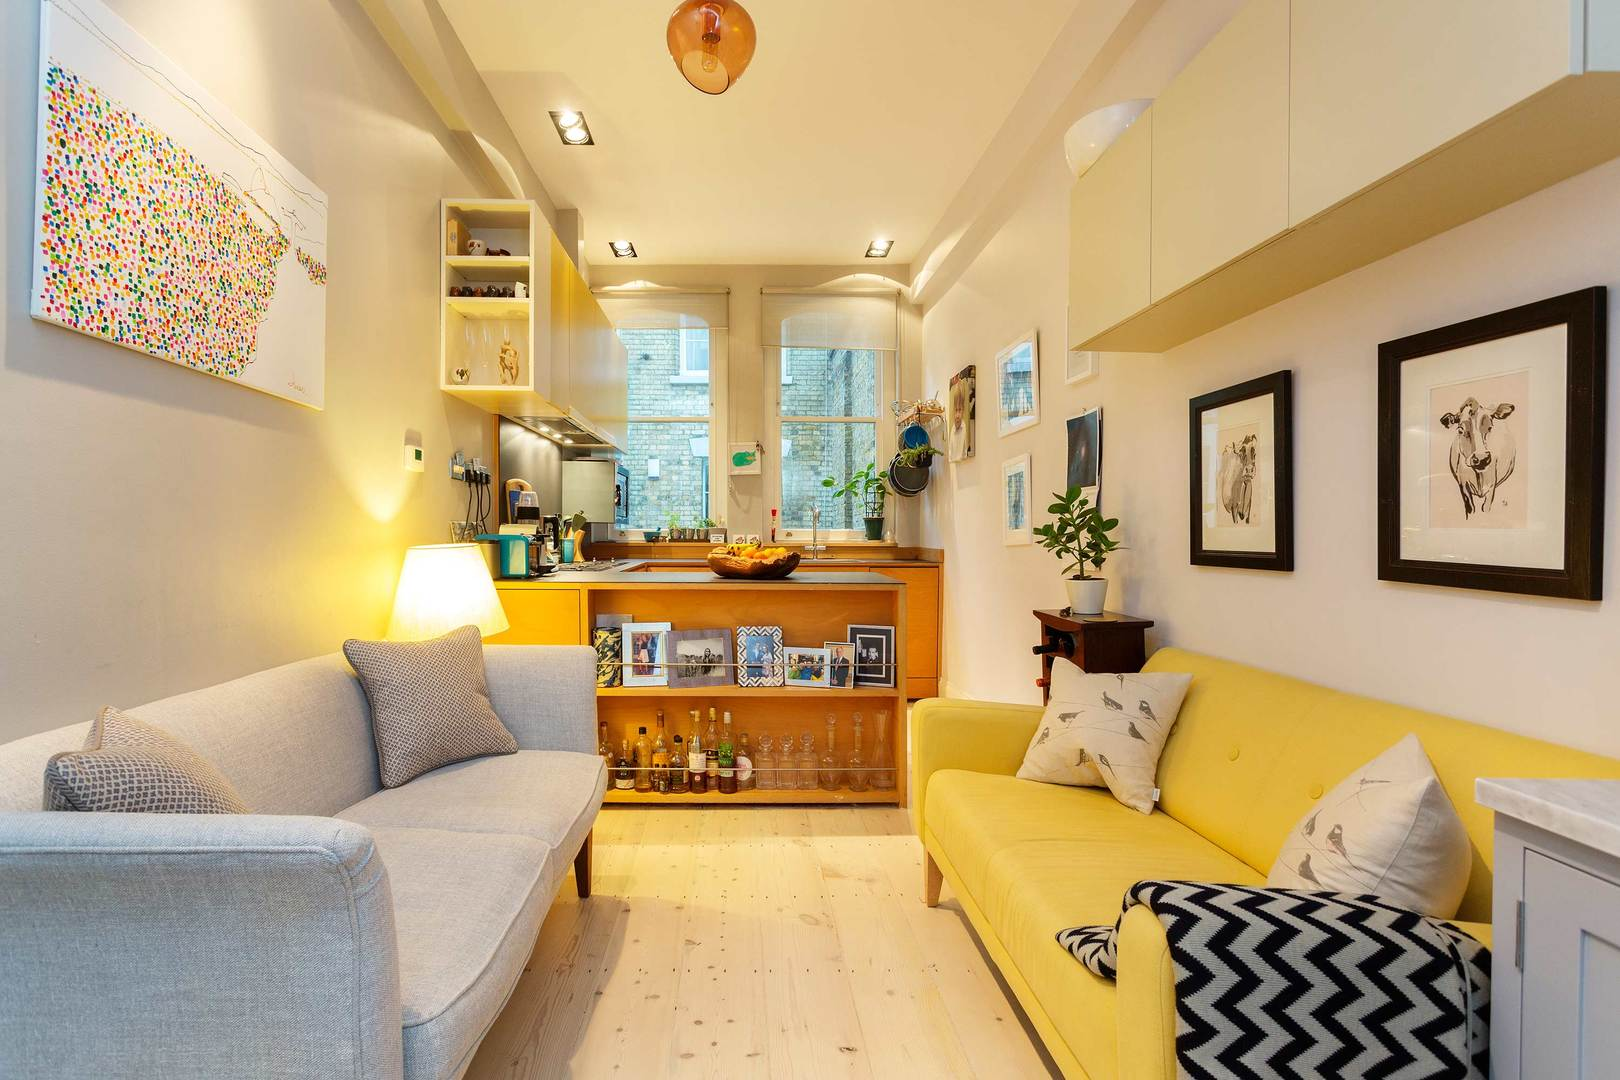 Paradisal By Victoria Park 3 Bed House In Hackney London Fields